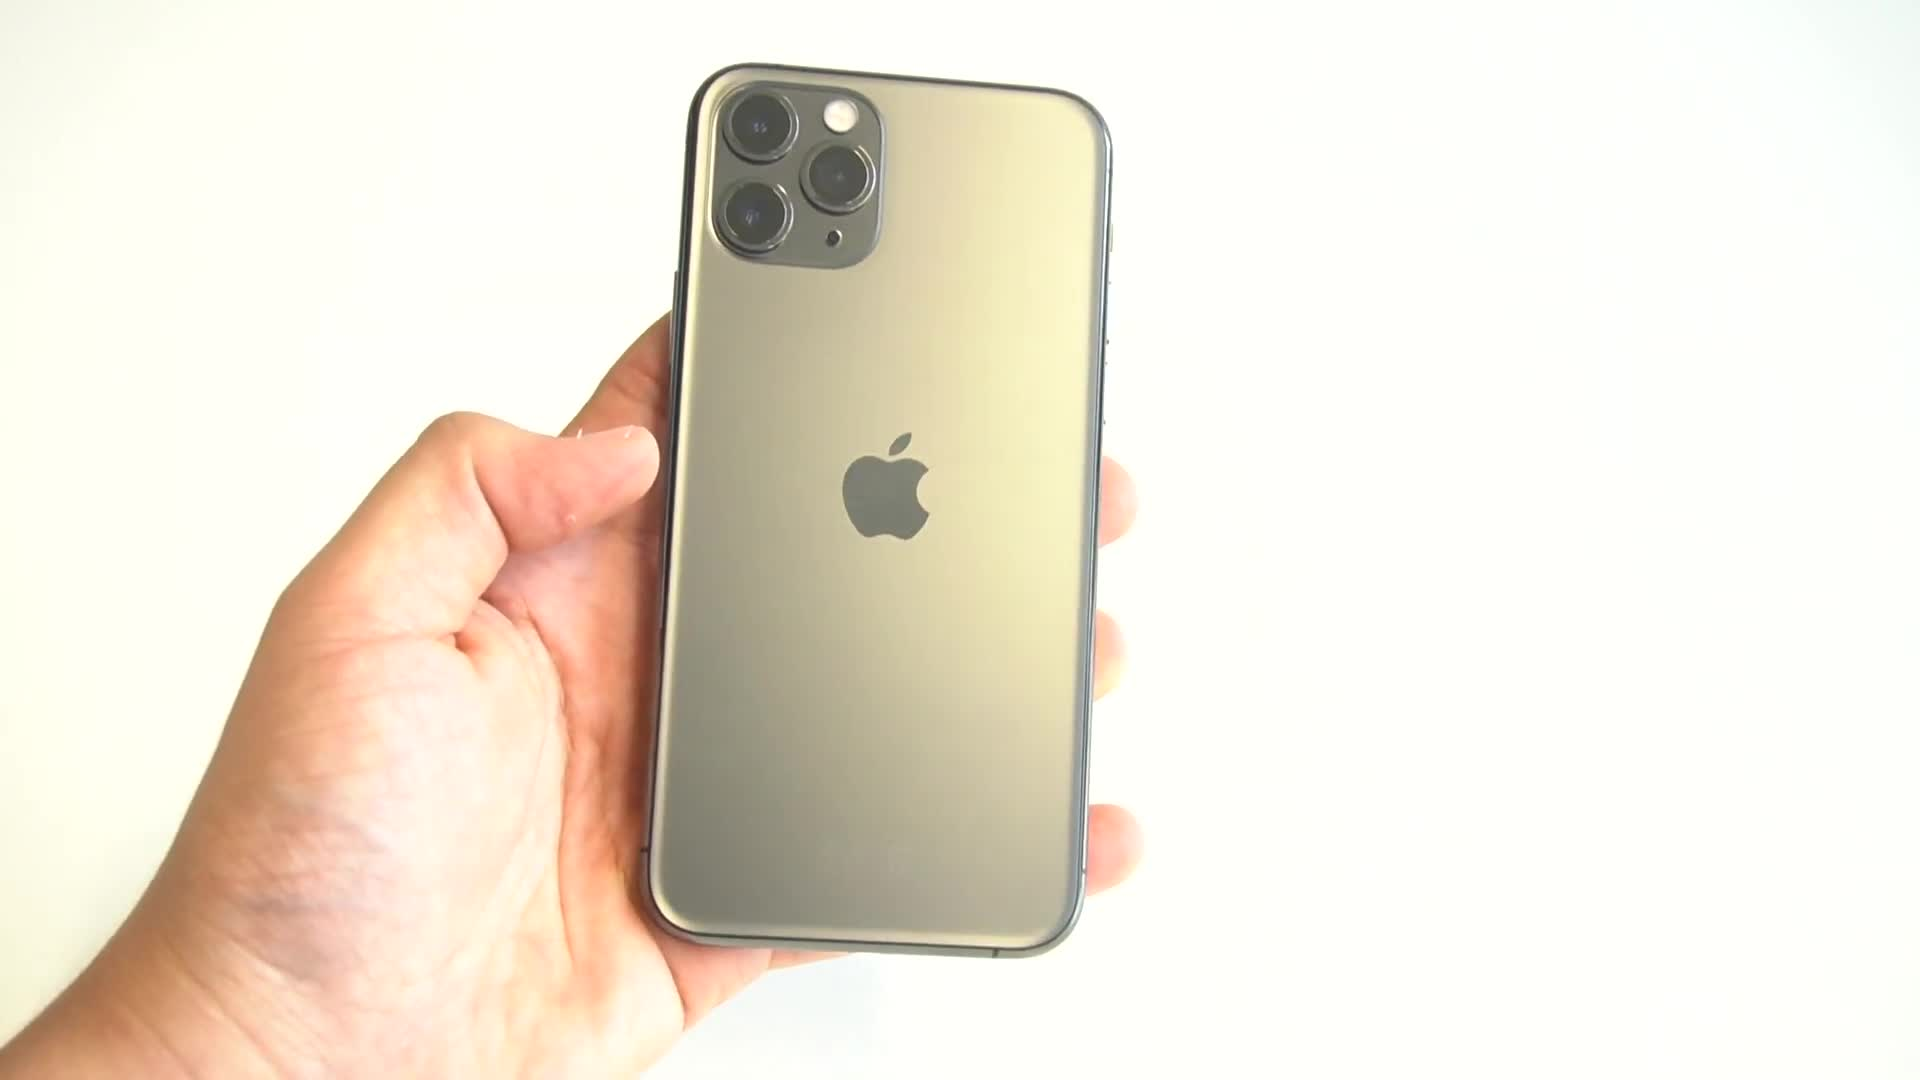 Smartphone, Apple, Iphone, NewGadgets, Johannes Knapp, Unboxing, iPhone 11 Pro, Apple iPhone 11 Pro